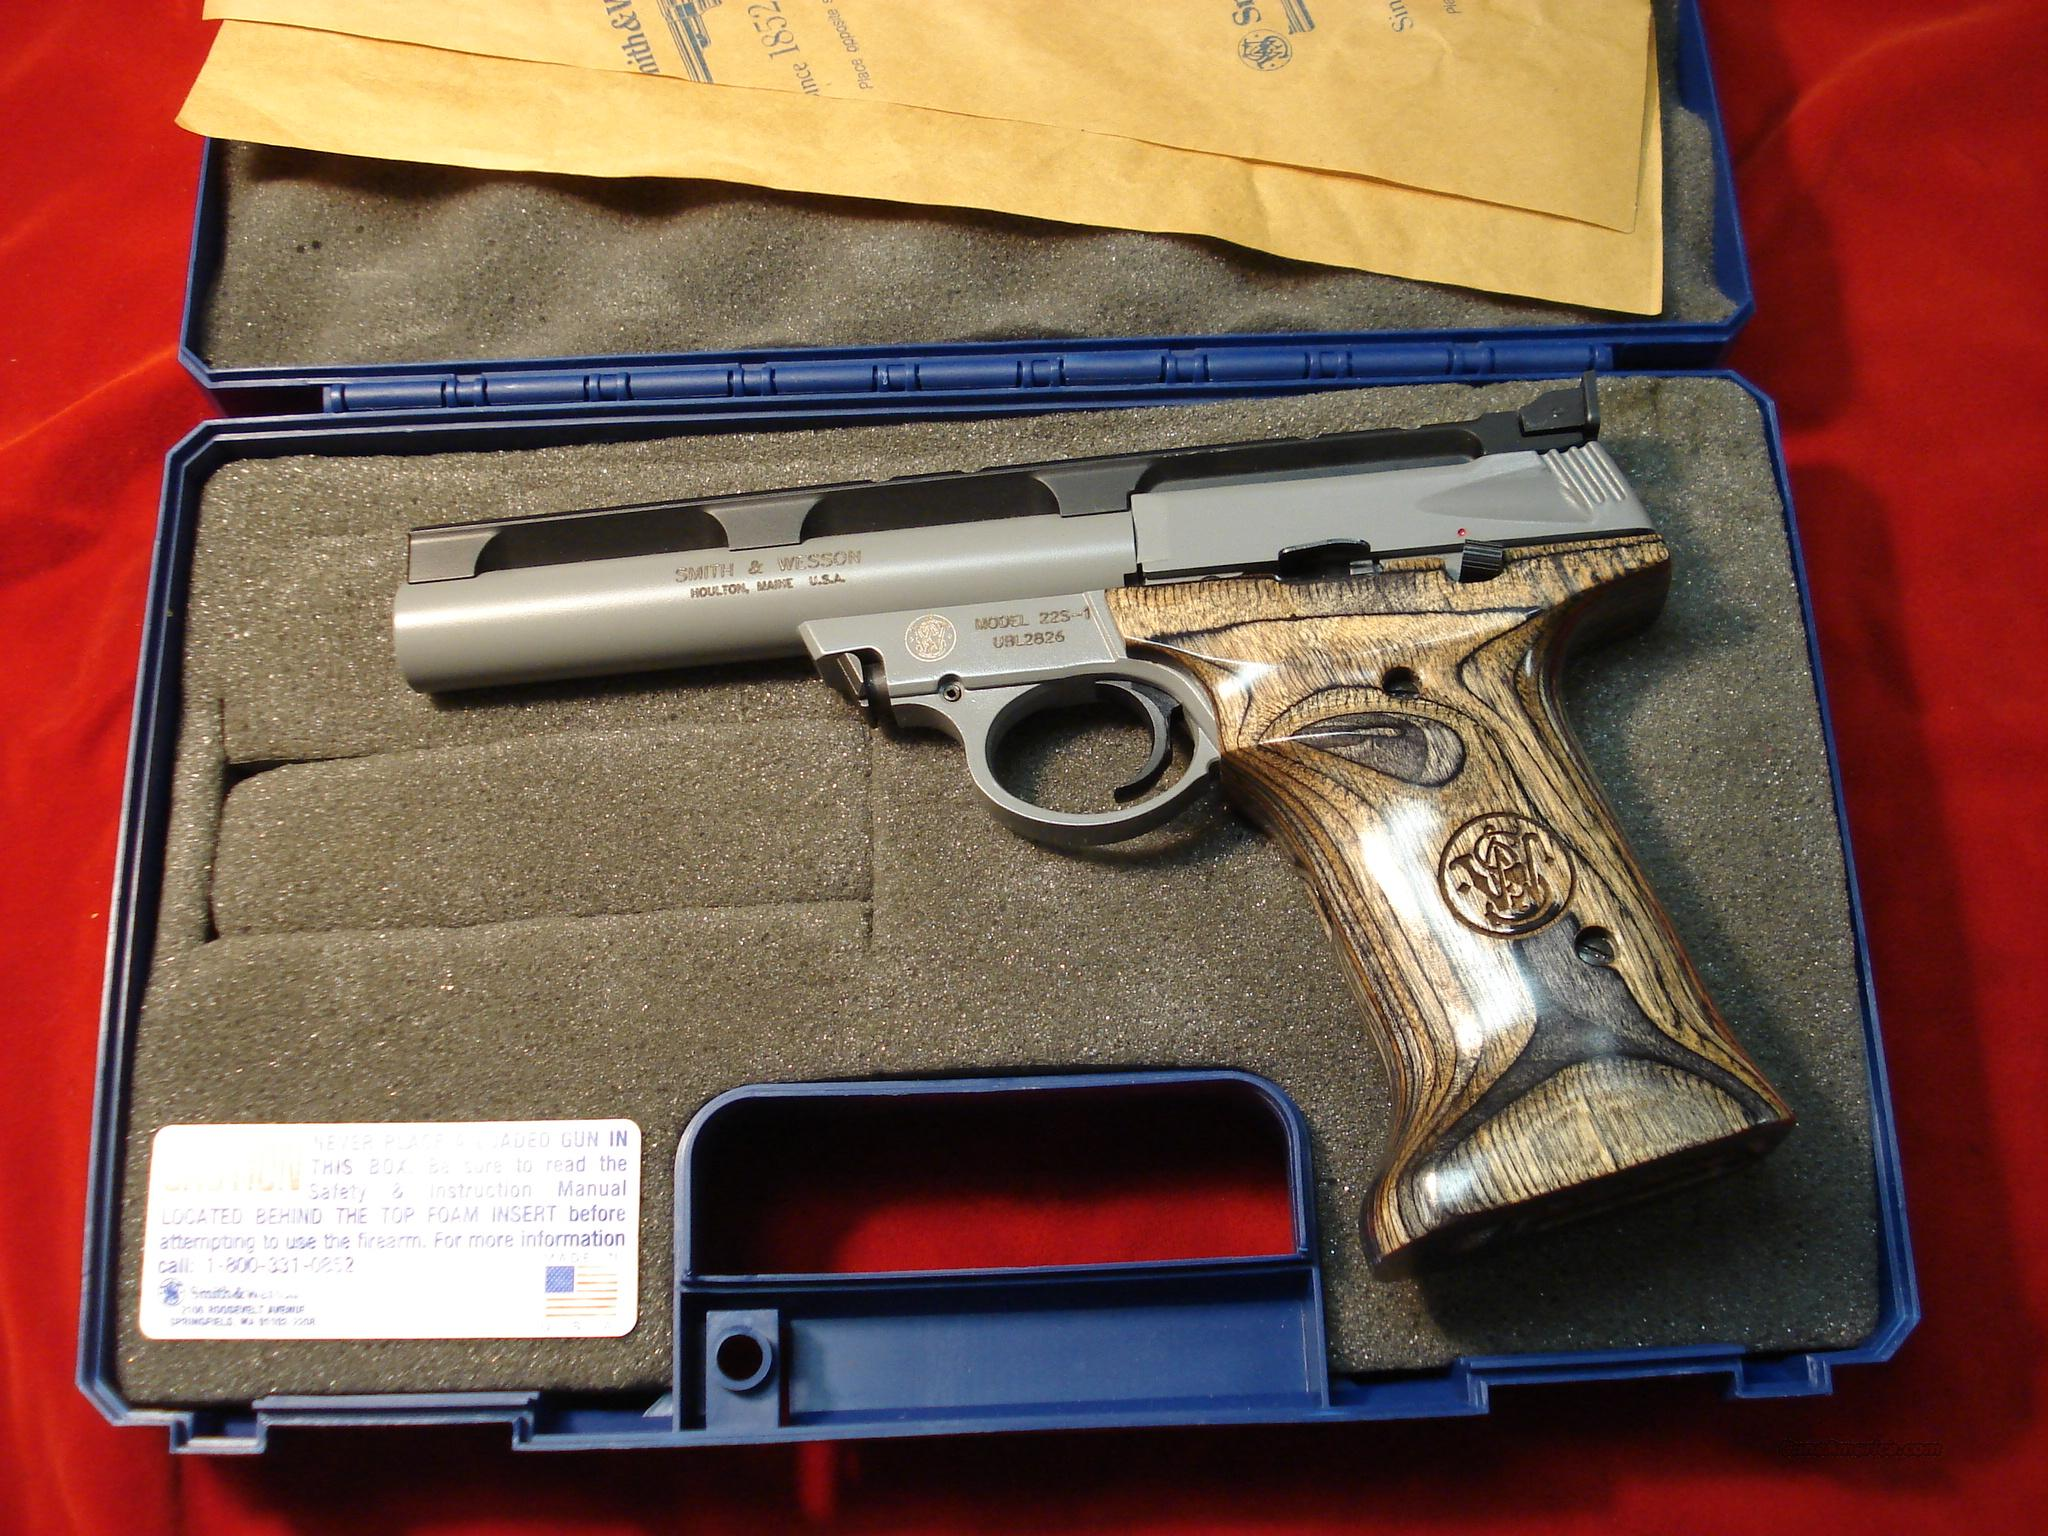 SMITH AND WESSON 22S 22CAL. LNIB  Guns > Pistols > Smith & Wesson Pistols - Autos > Steel Frame